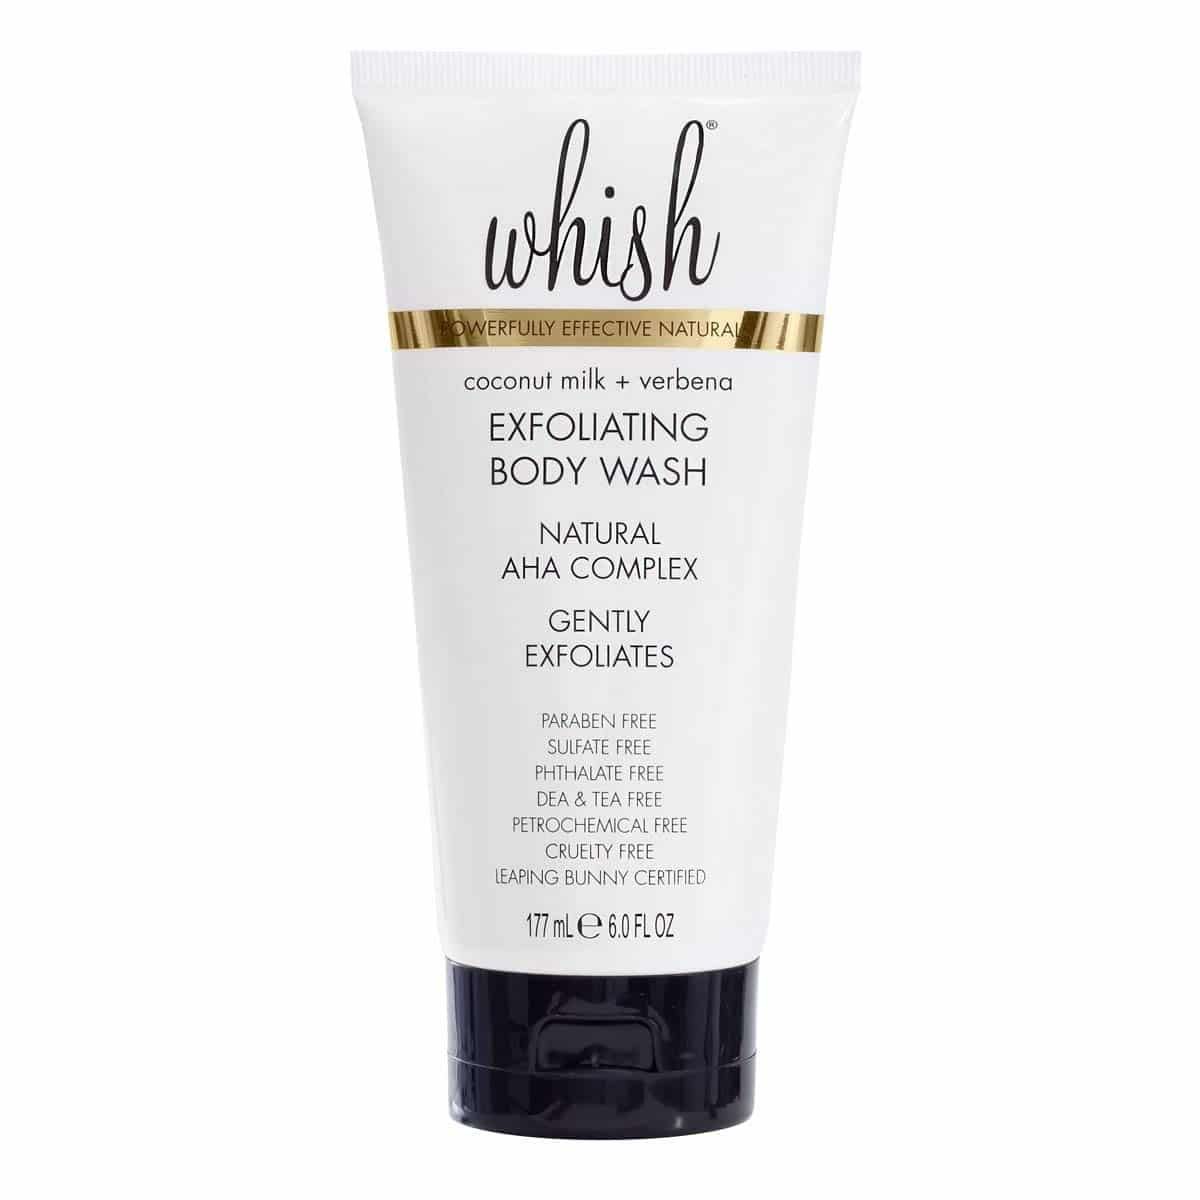 Whish Beauty Coconut Milk and Verbena Exfoliating Body Wash